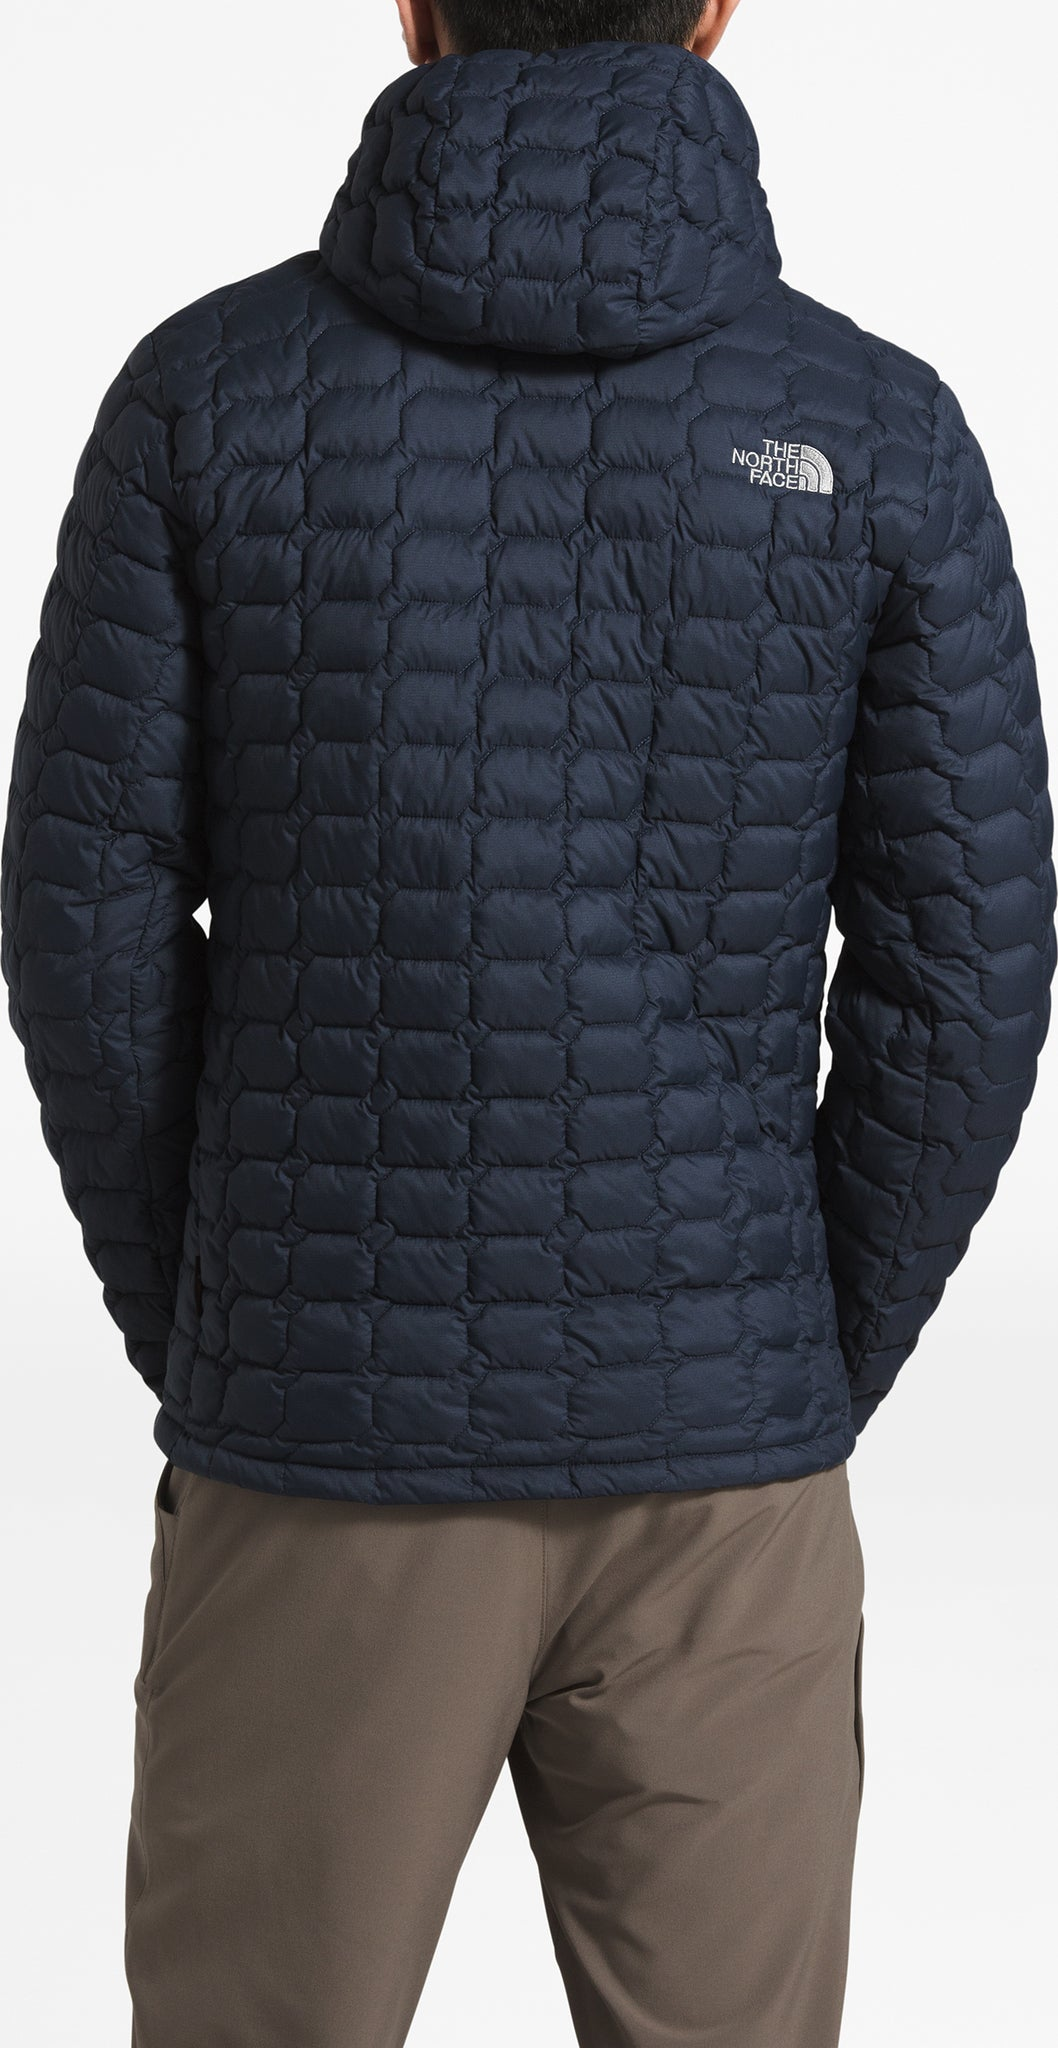 076b7f61a The North Face ThermoBall Hoodie - Men's